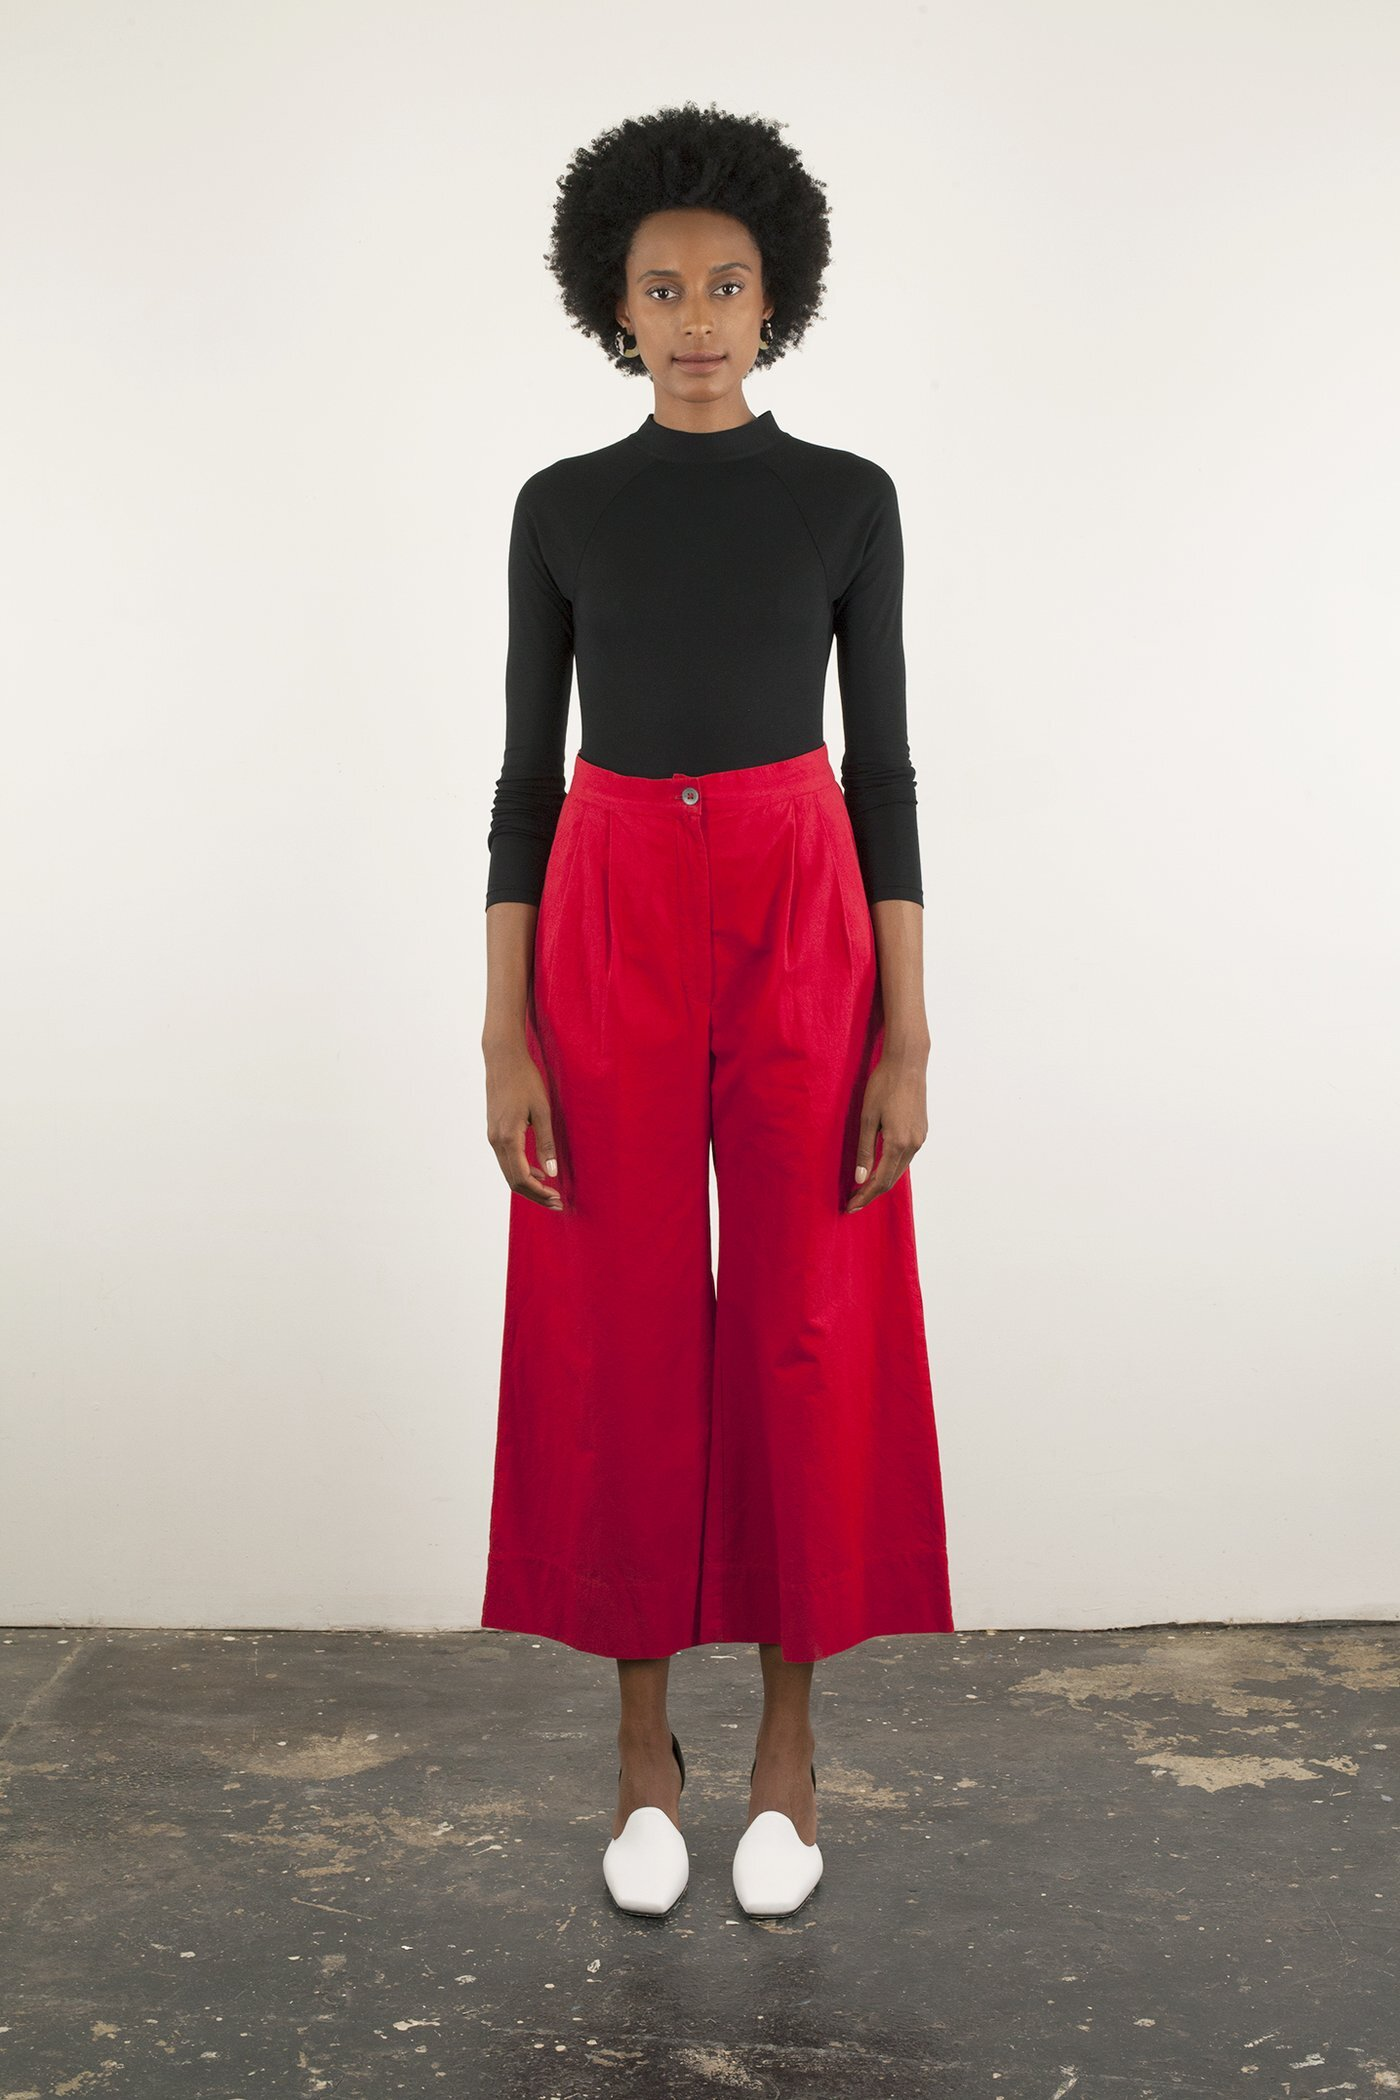 WRAY - Eli Pant / $165Parisian pre-school teacher but make it fashion? Somehow this pleated, 100% cotton pant did just that.